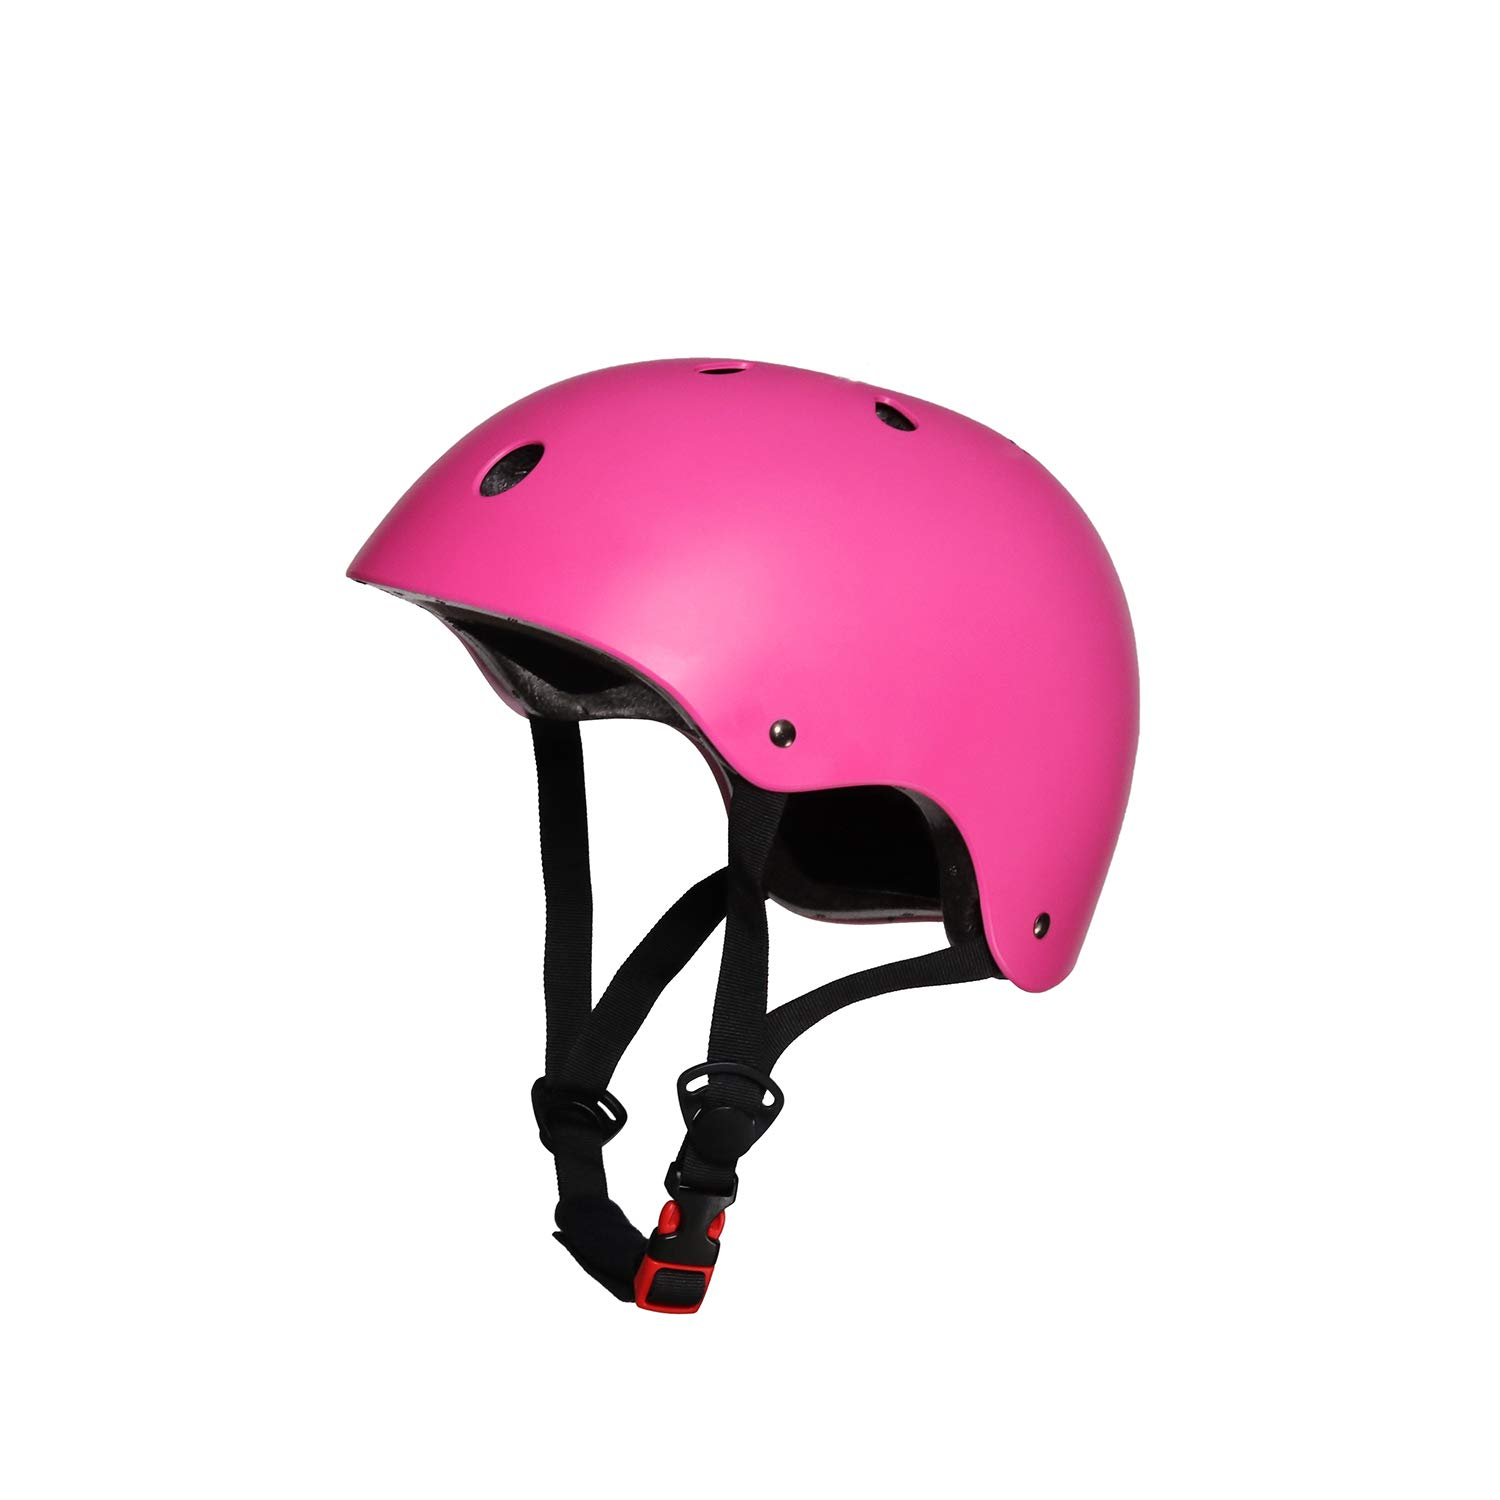 Vihir Kids Adults Bike Helmet,Toddler Helmet, Multi-Sport Cycling Helmet for Outdoor Sports